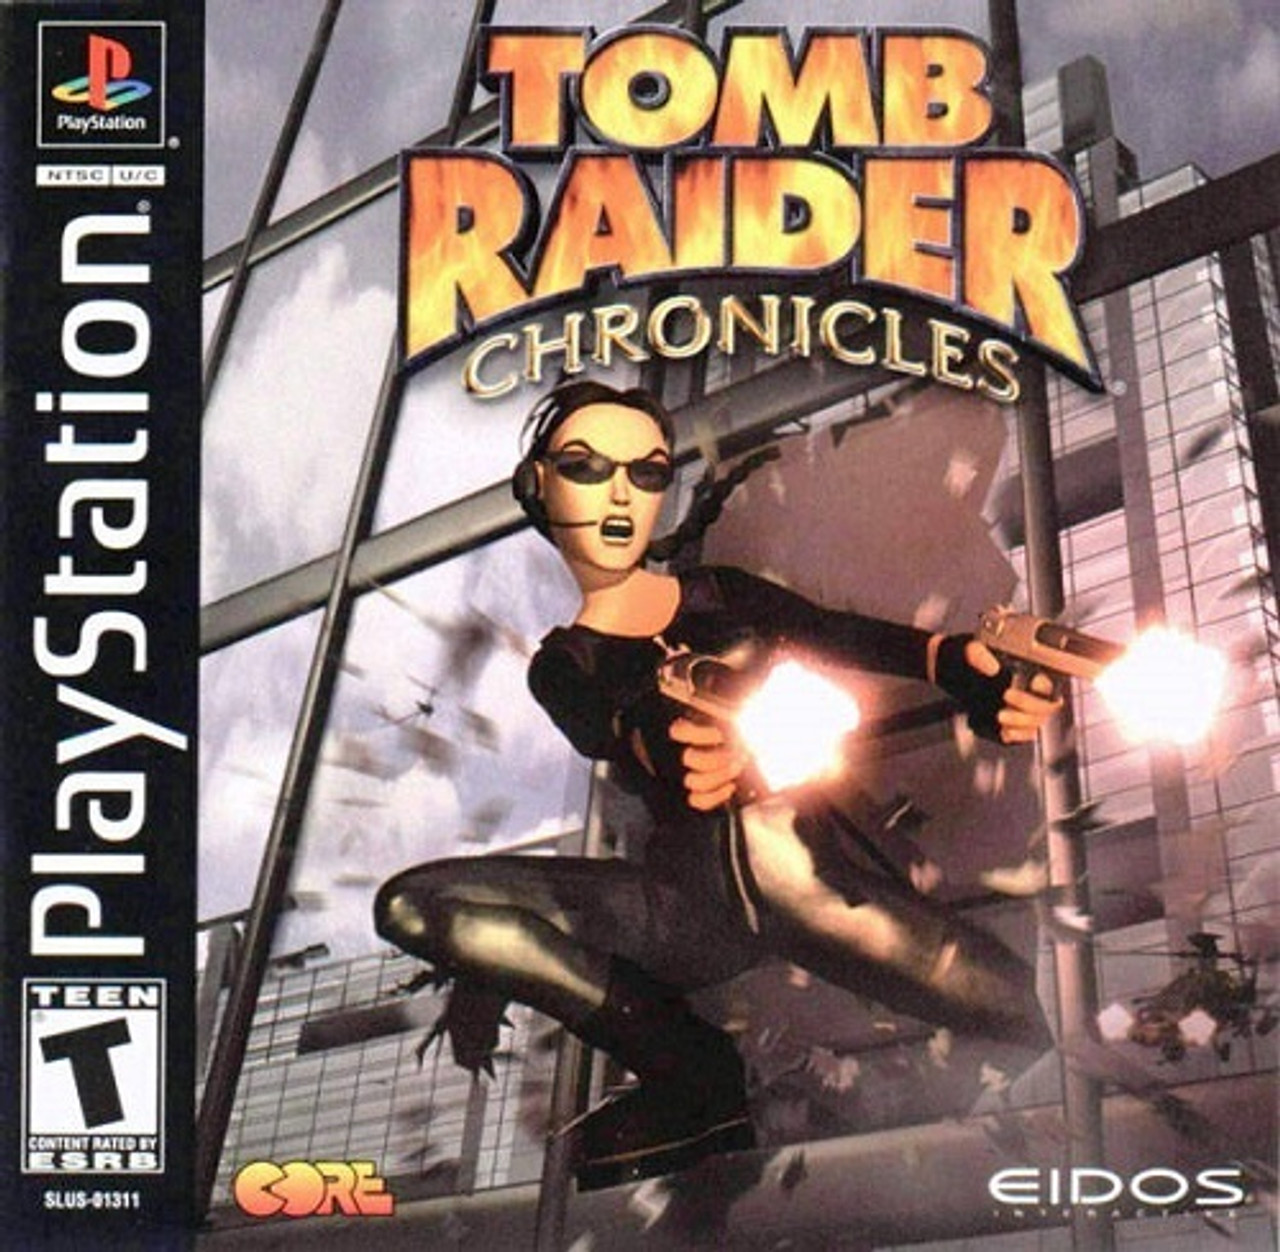 Tomb Raider Chronicles Playstation 1 Ps1 Game For Sale Dkoldies